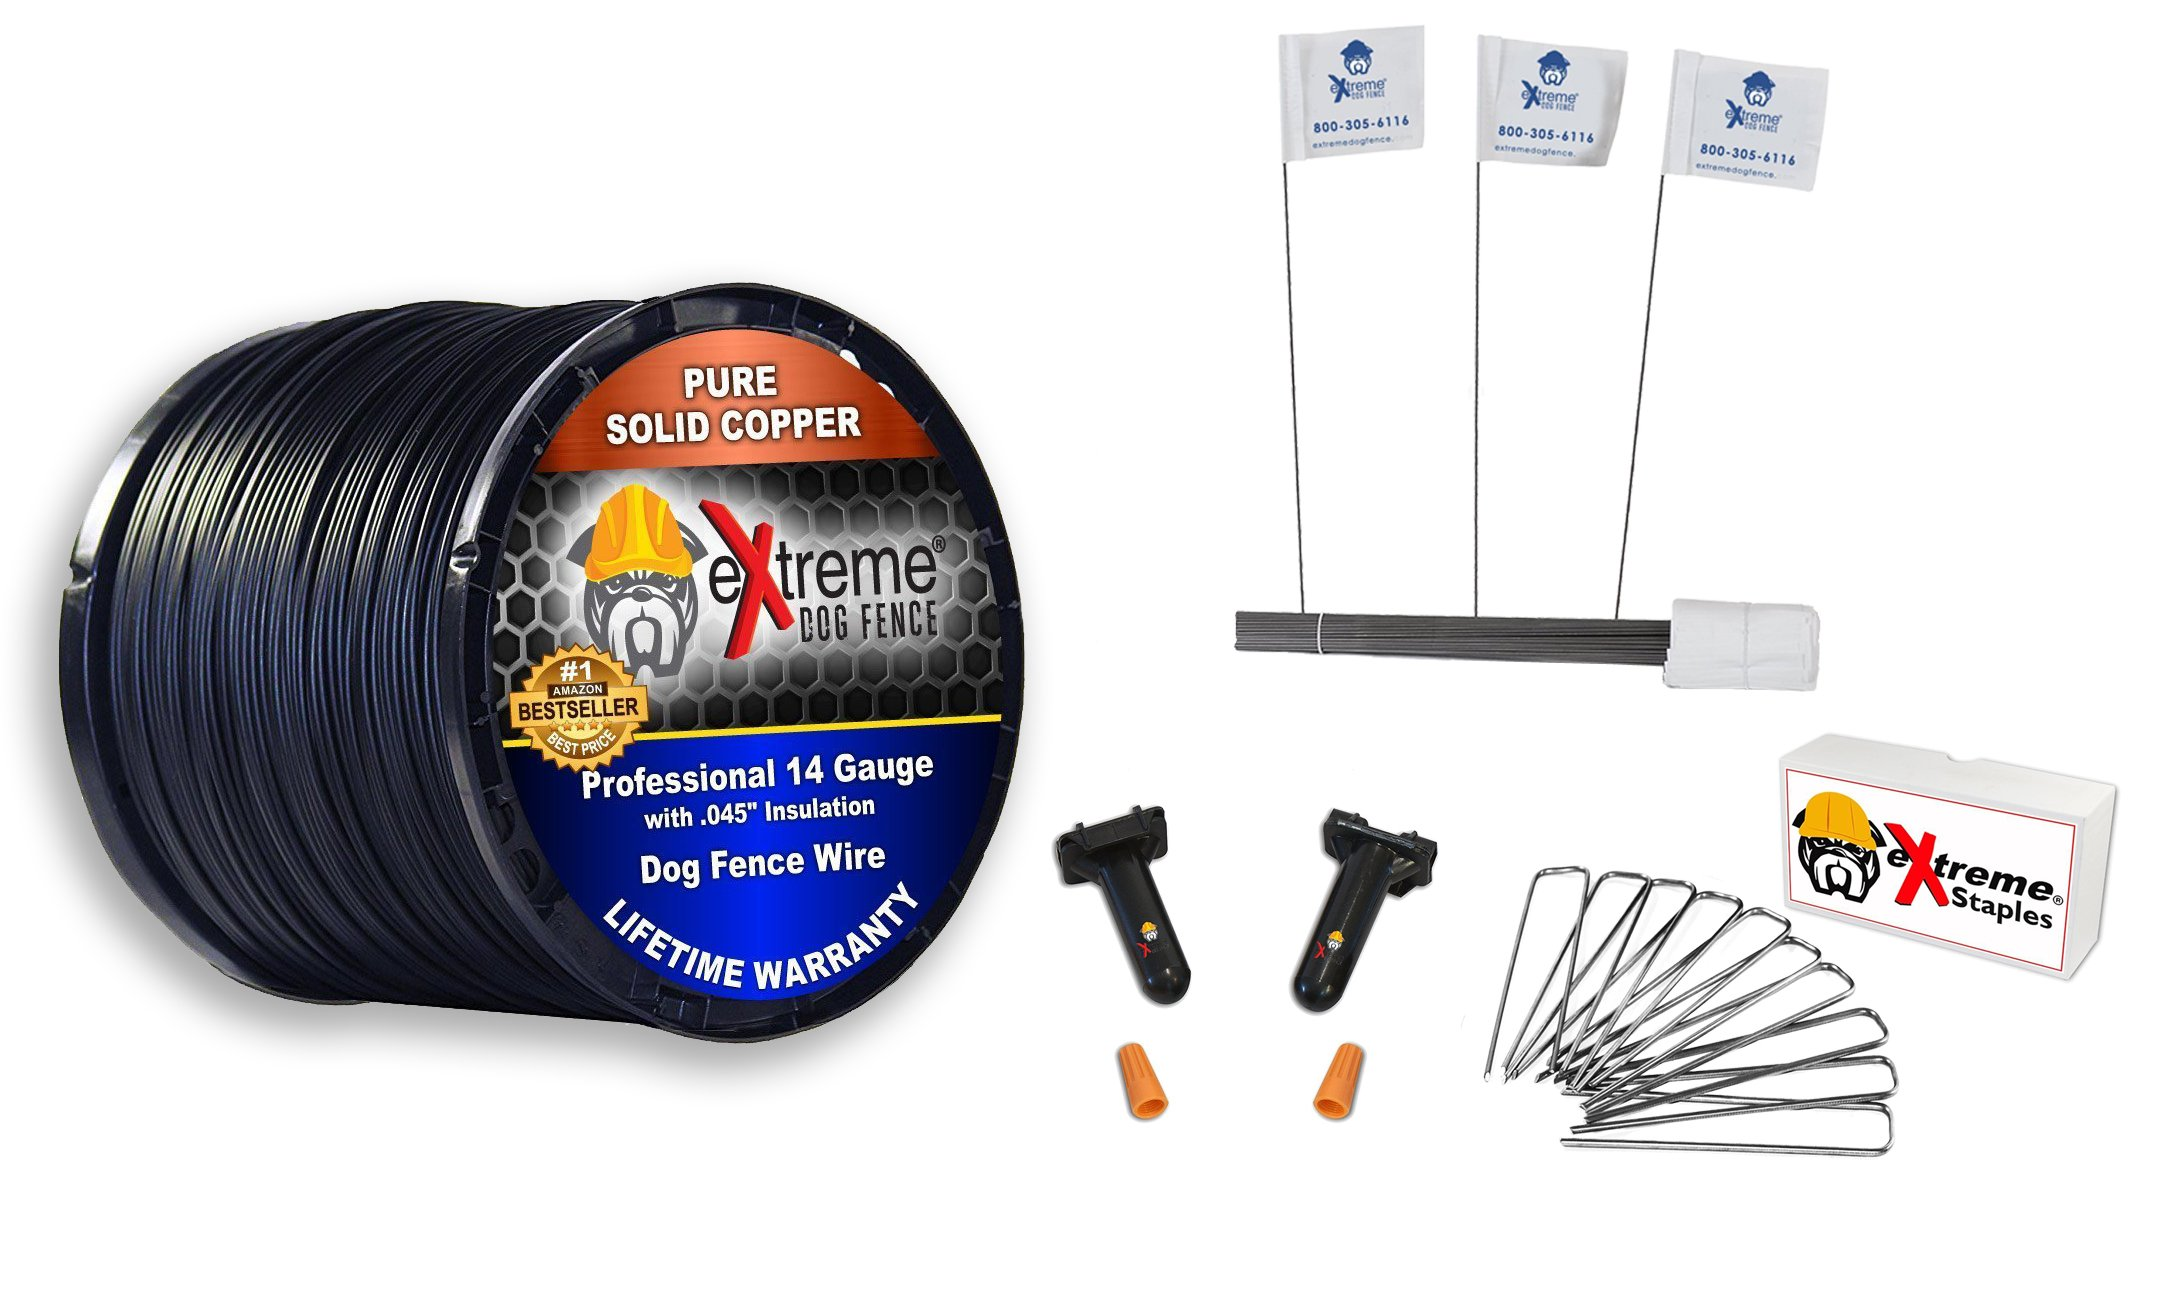 Dog Fence Wire Setup Kit - 1000 Feet of 14 Gauge Wire, 100 Training Flags, 200 Staples and 2 Pro Grade Splice Kits for 1 Acre - Compatible with All Electric Dog Fence Brands and Models by Extreme Dog Fence